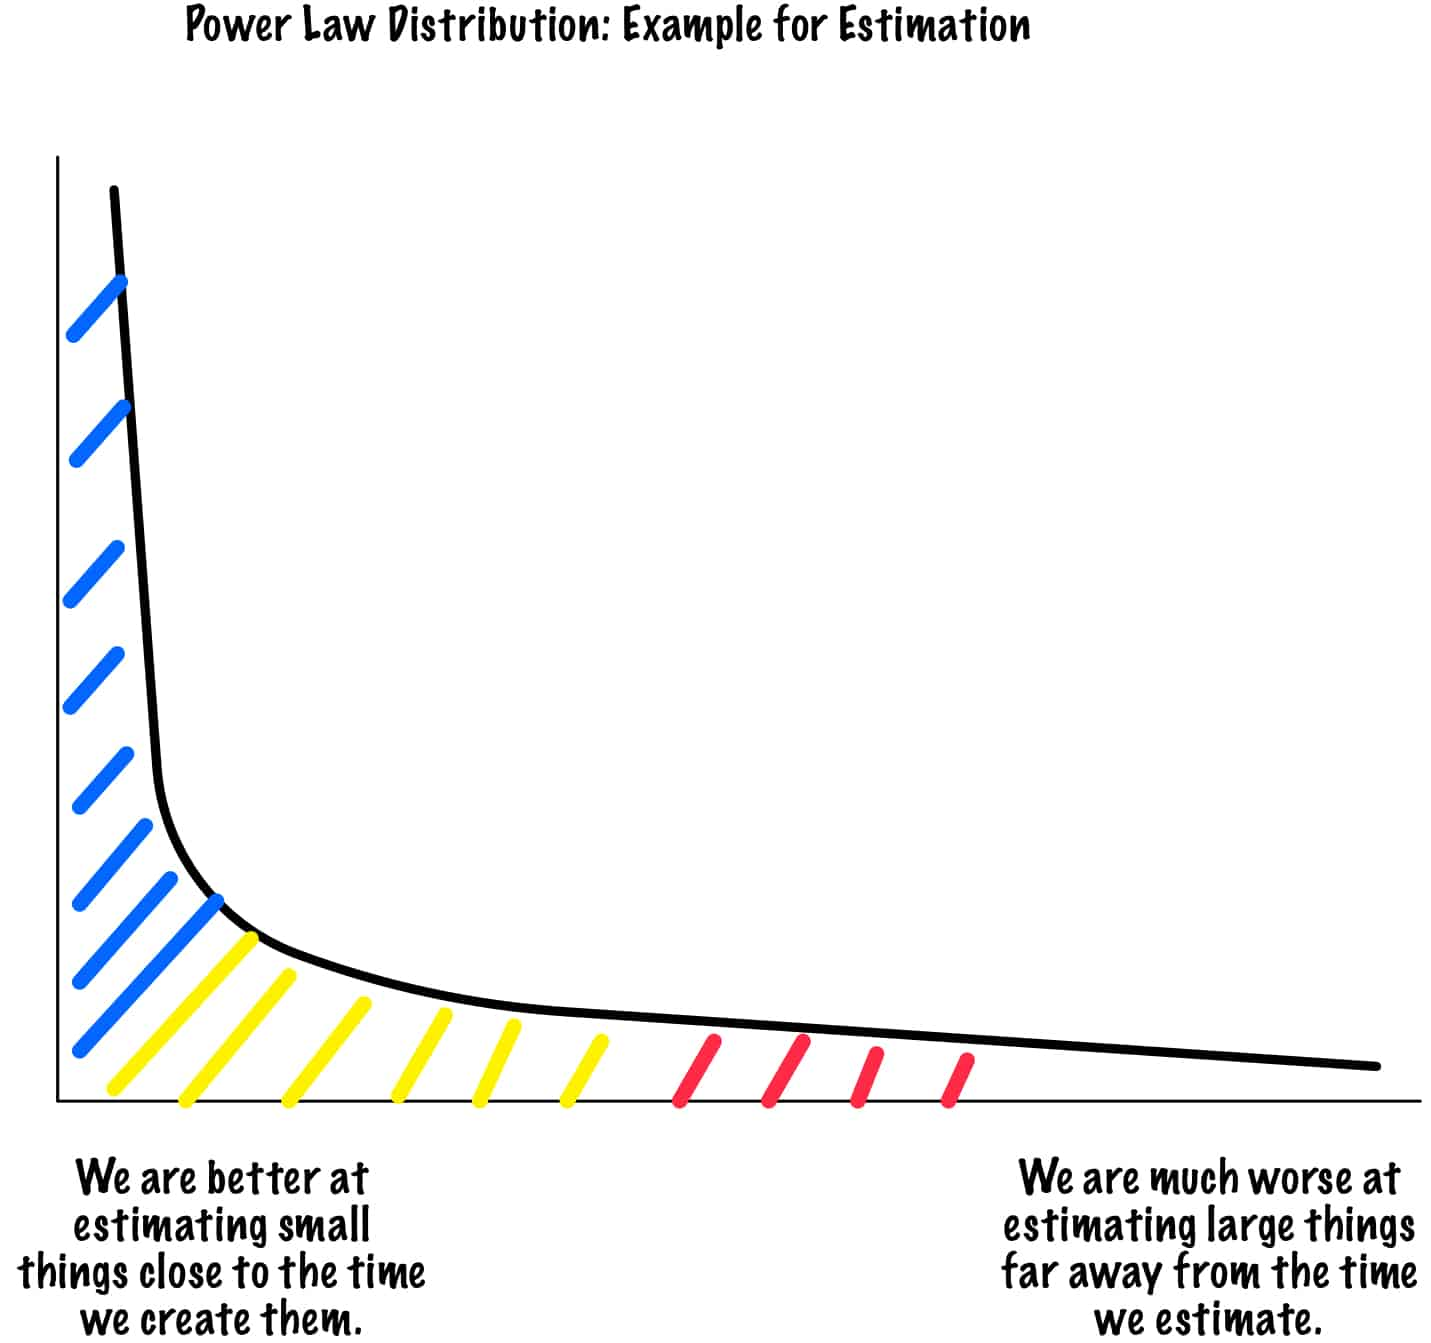 powerlawdistribution